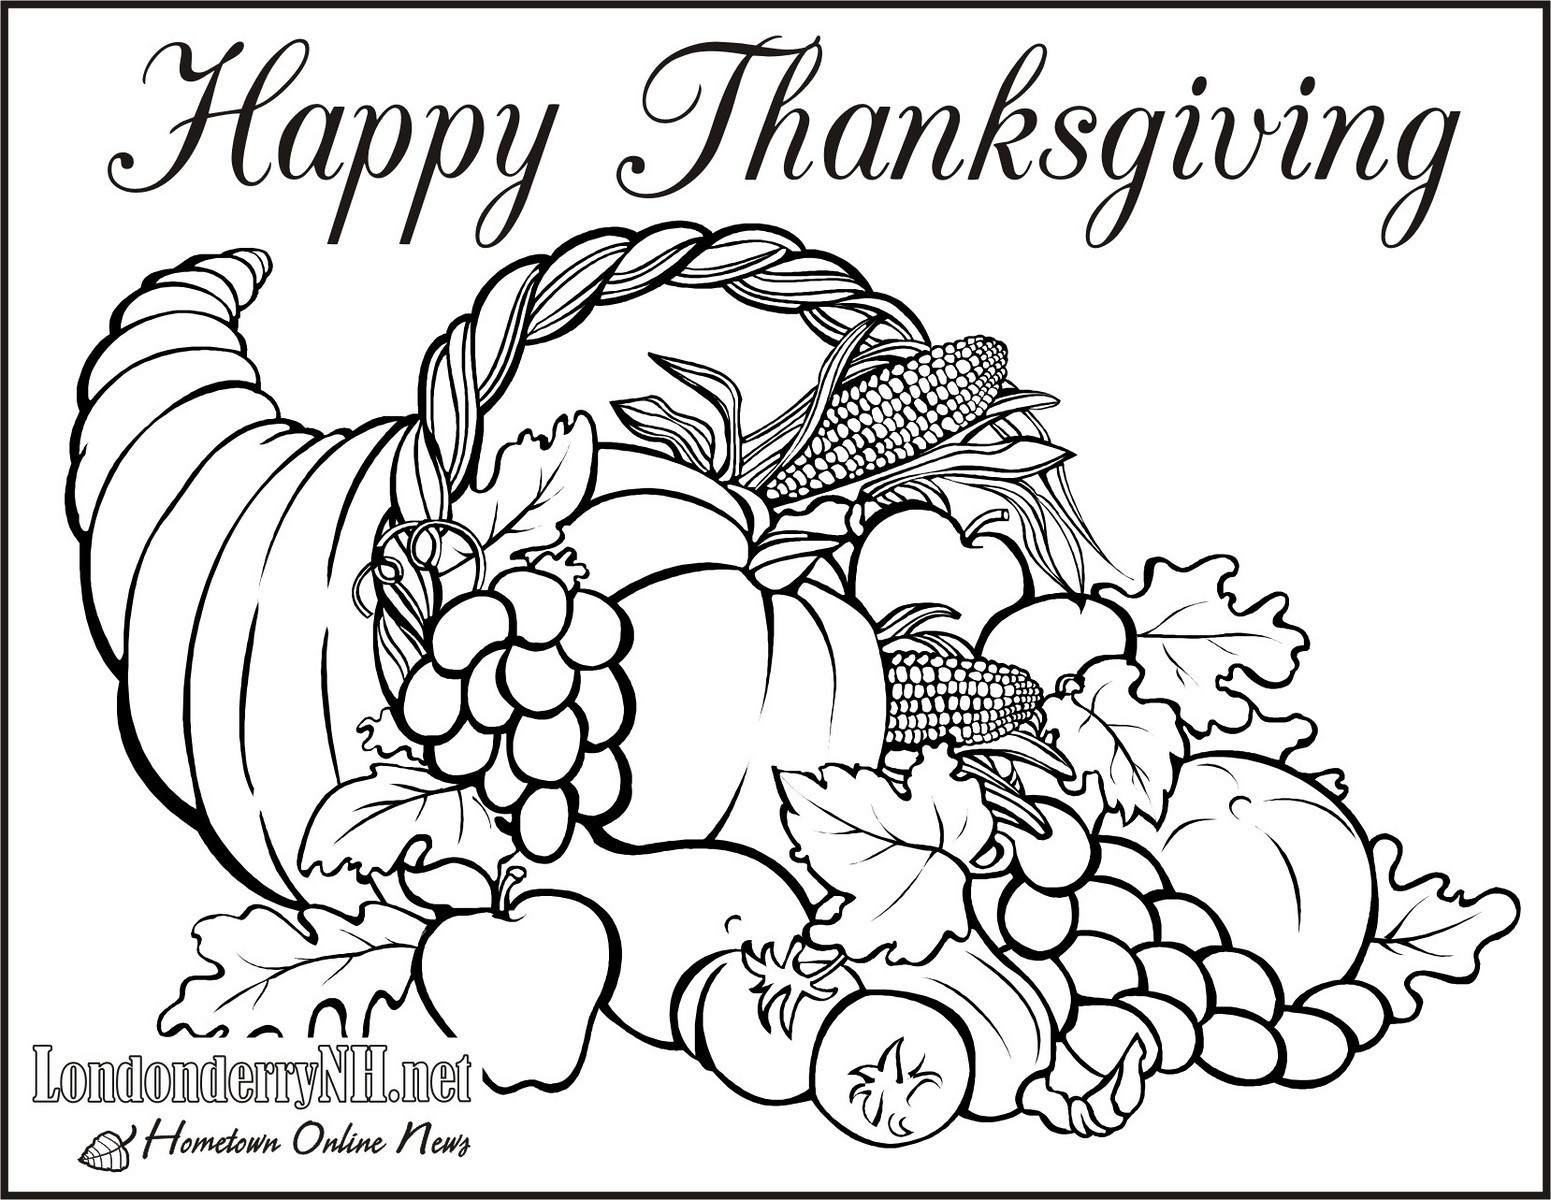 graphic relating to Cornucopia Coloring Pages Printable identify No cost Cornucopia Coloring Internet pages at  No cost for